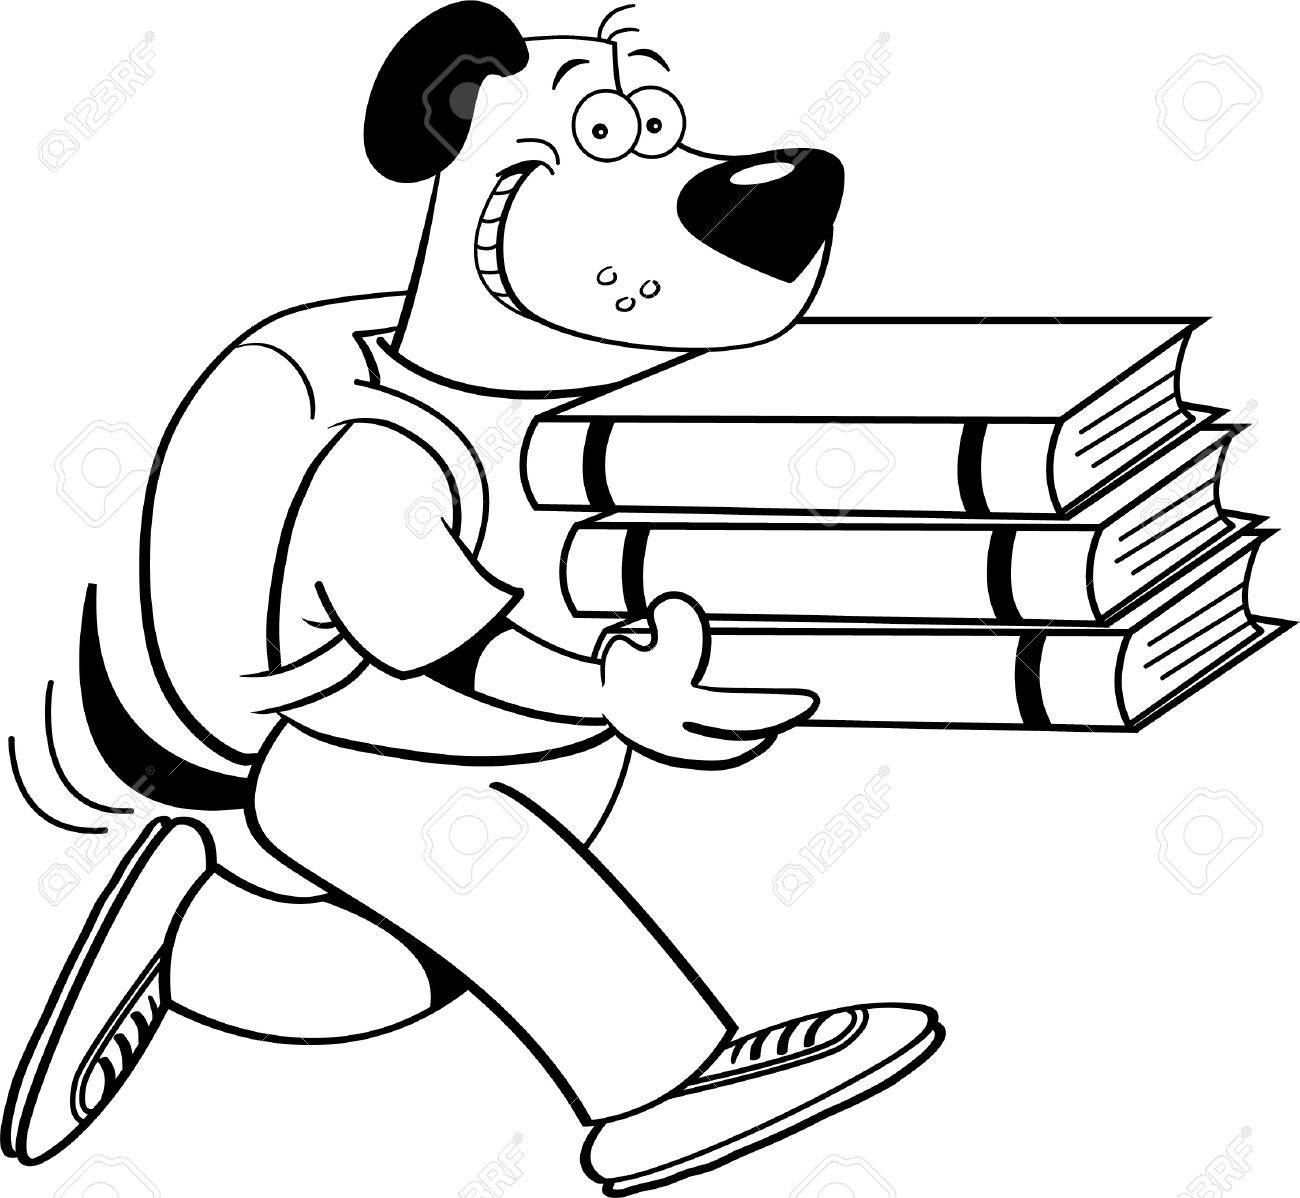 Black and white illustration of a dog carrying books Stock Vector - 15114936